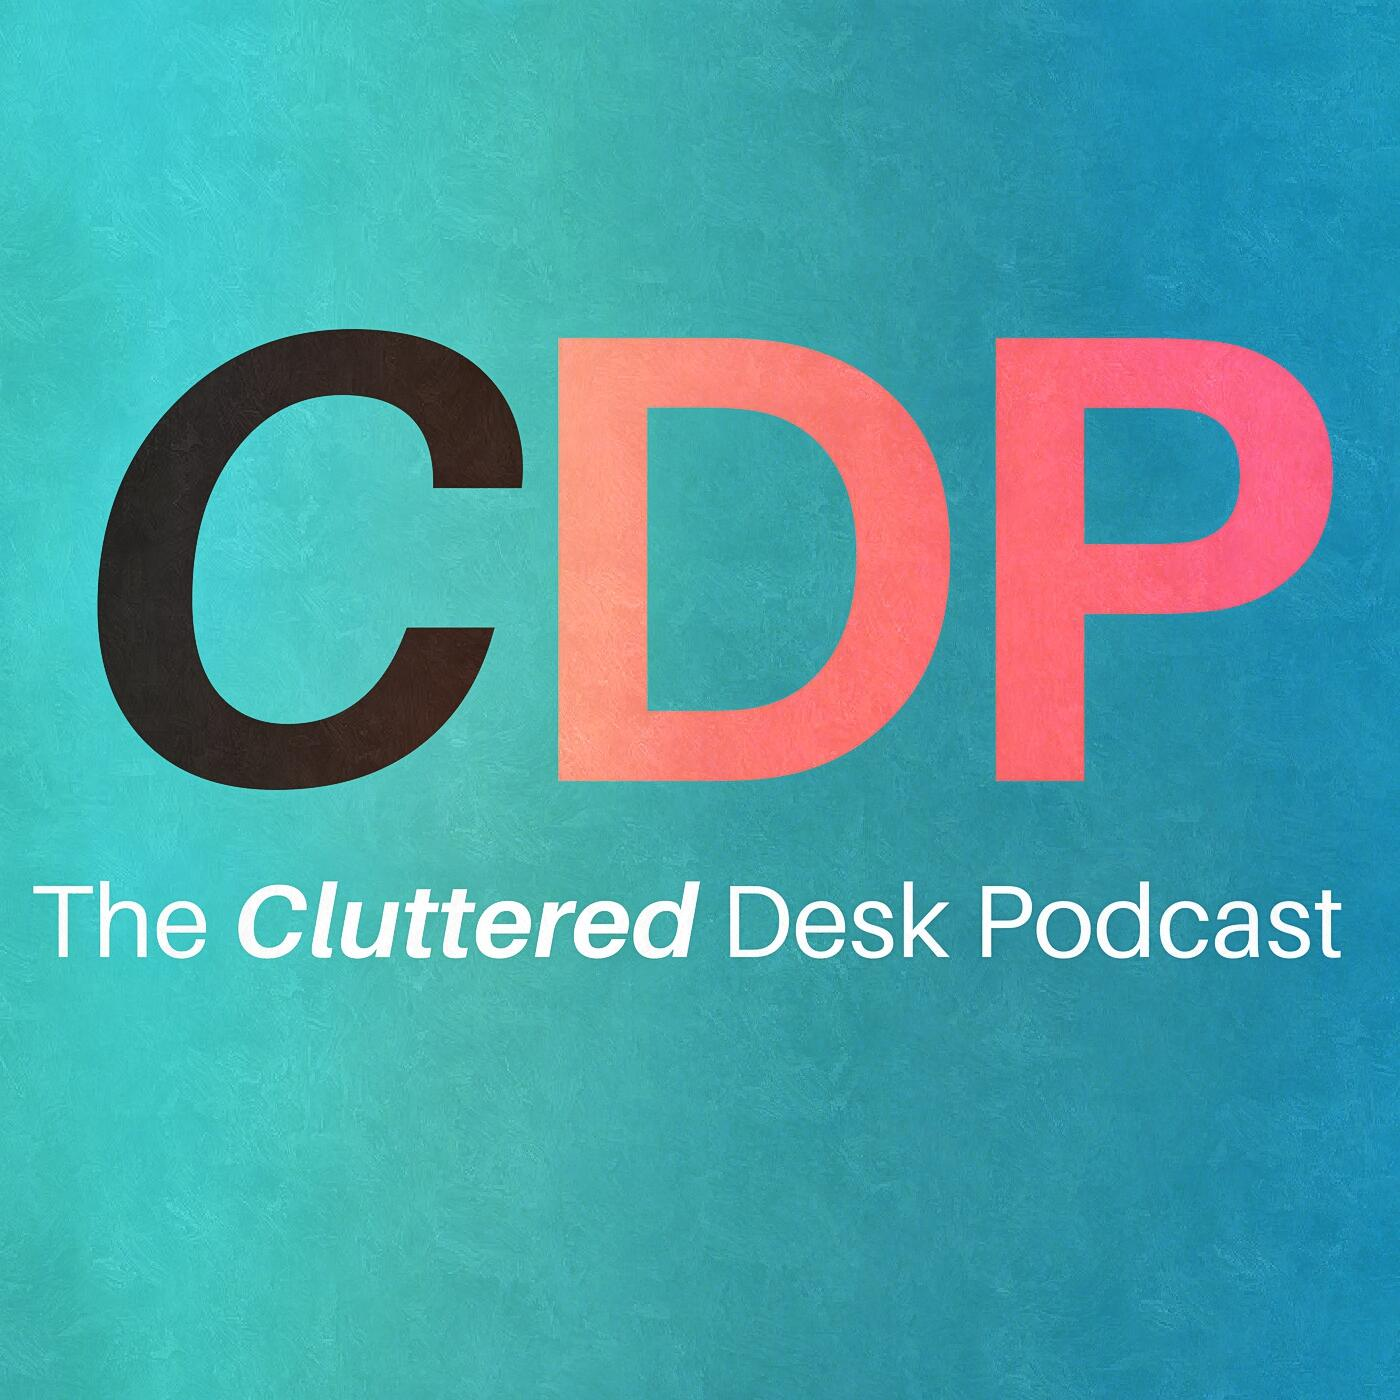 The Cluttered Desk Podcast